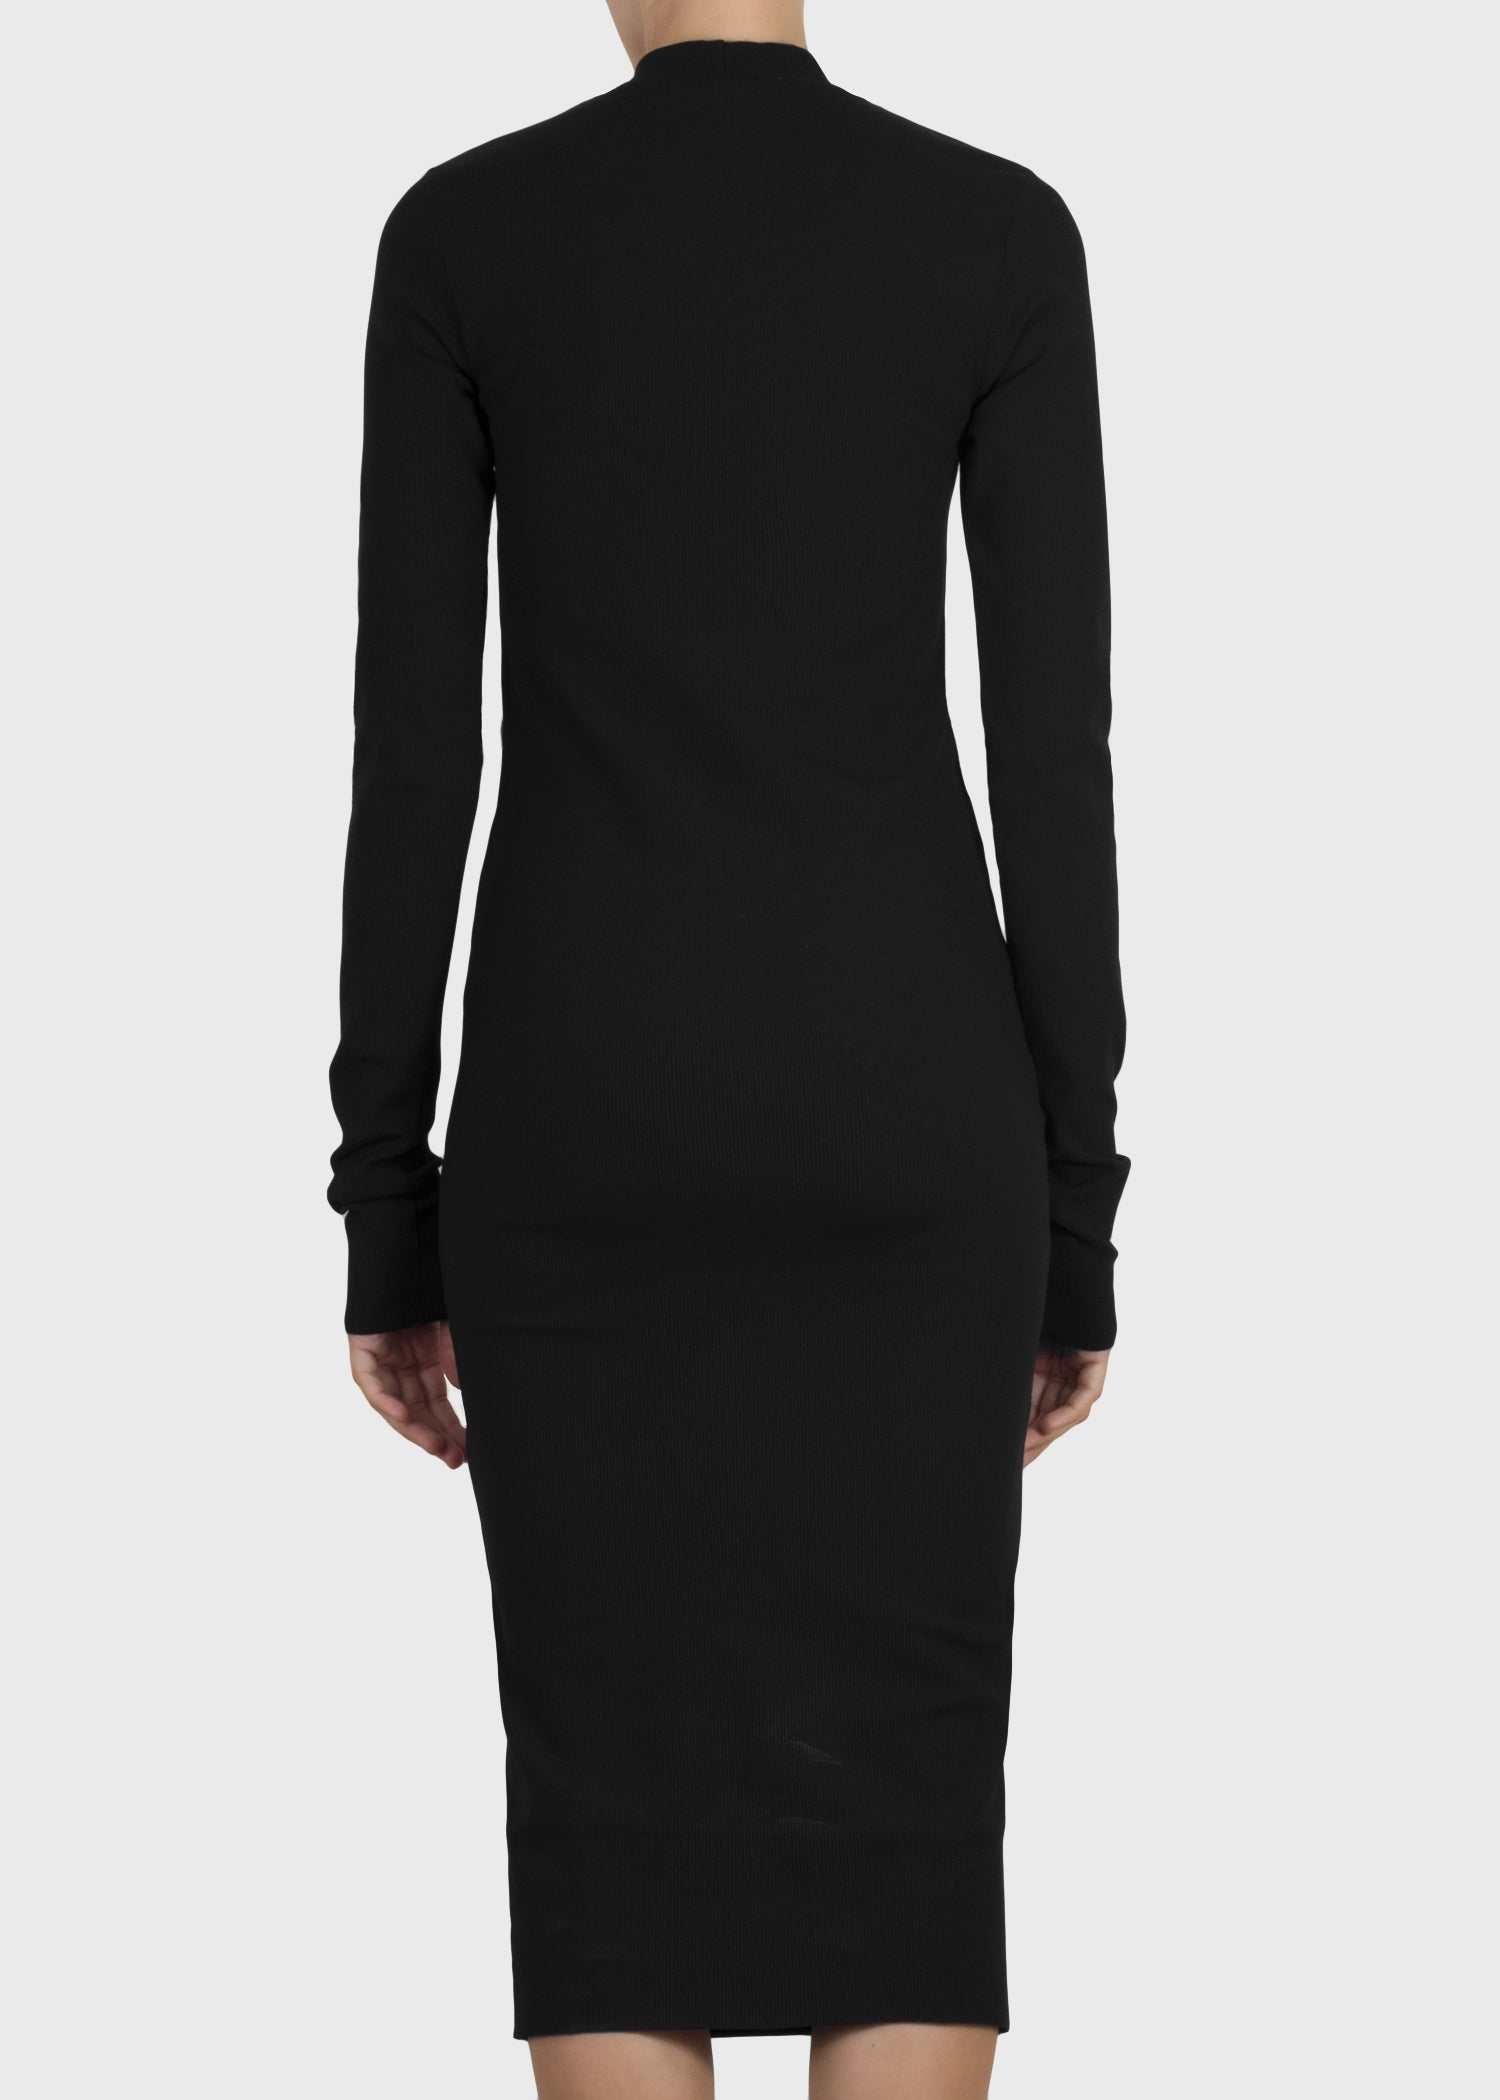 serpent dress - black